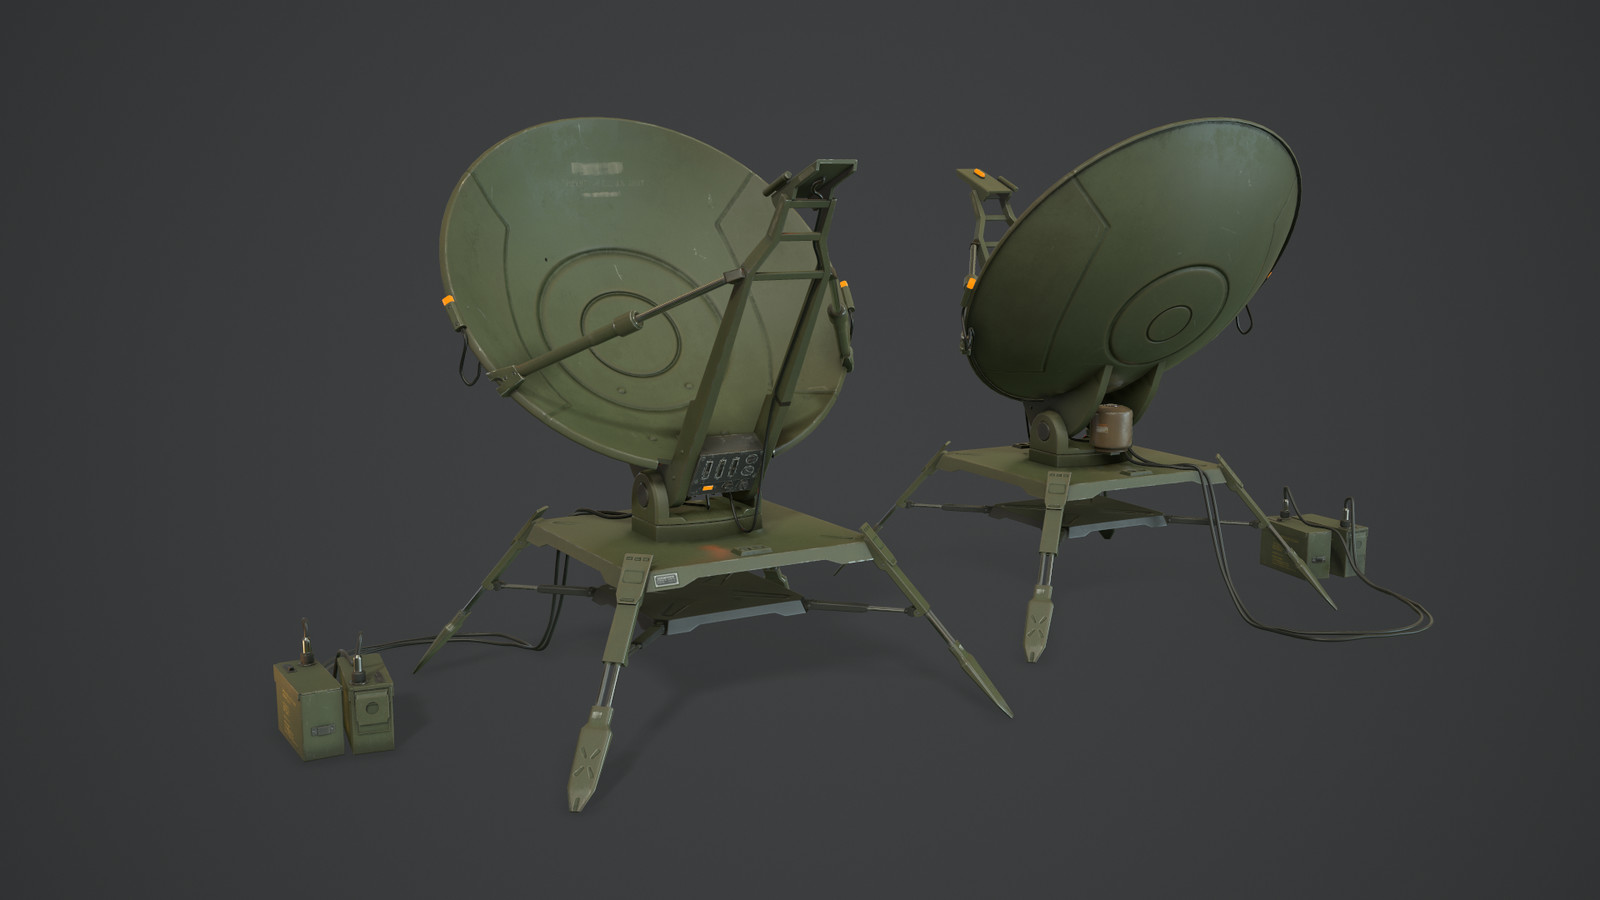 Original version - final low poly rendered in Marmoset Toolbag 3